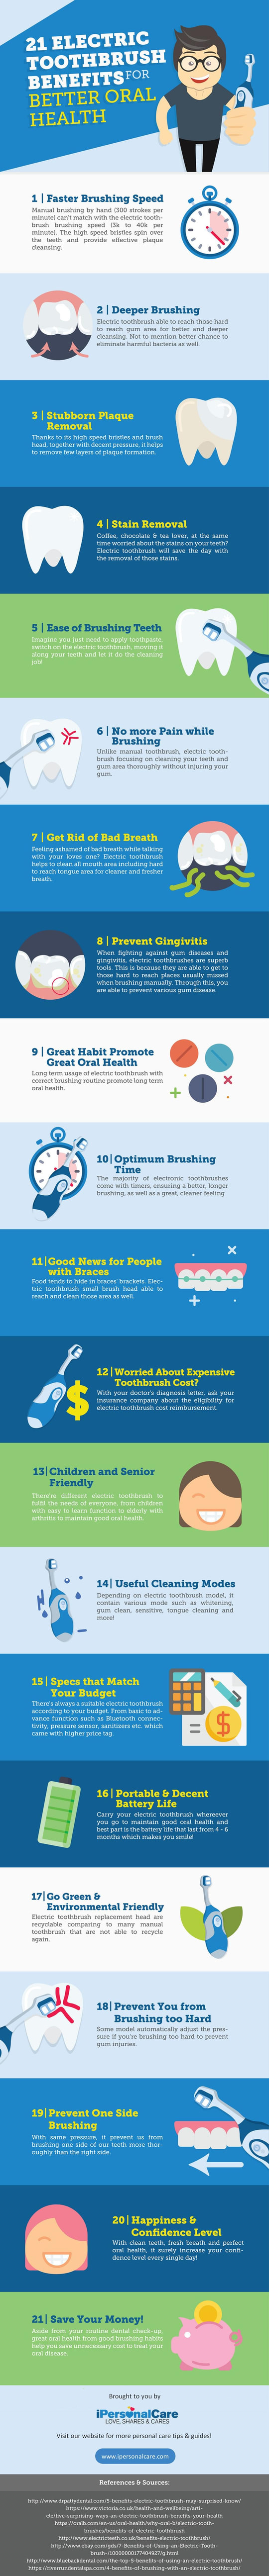 21 Electric Toothbrush Benefits Better Oral Health